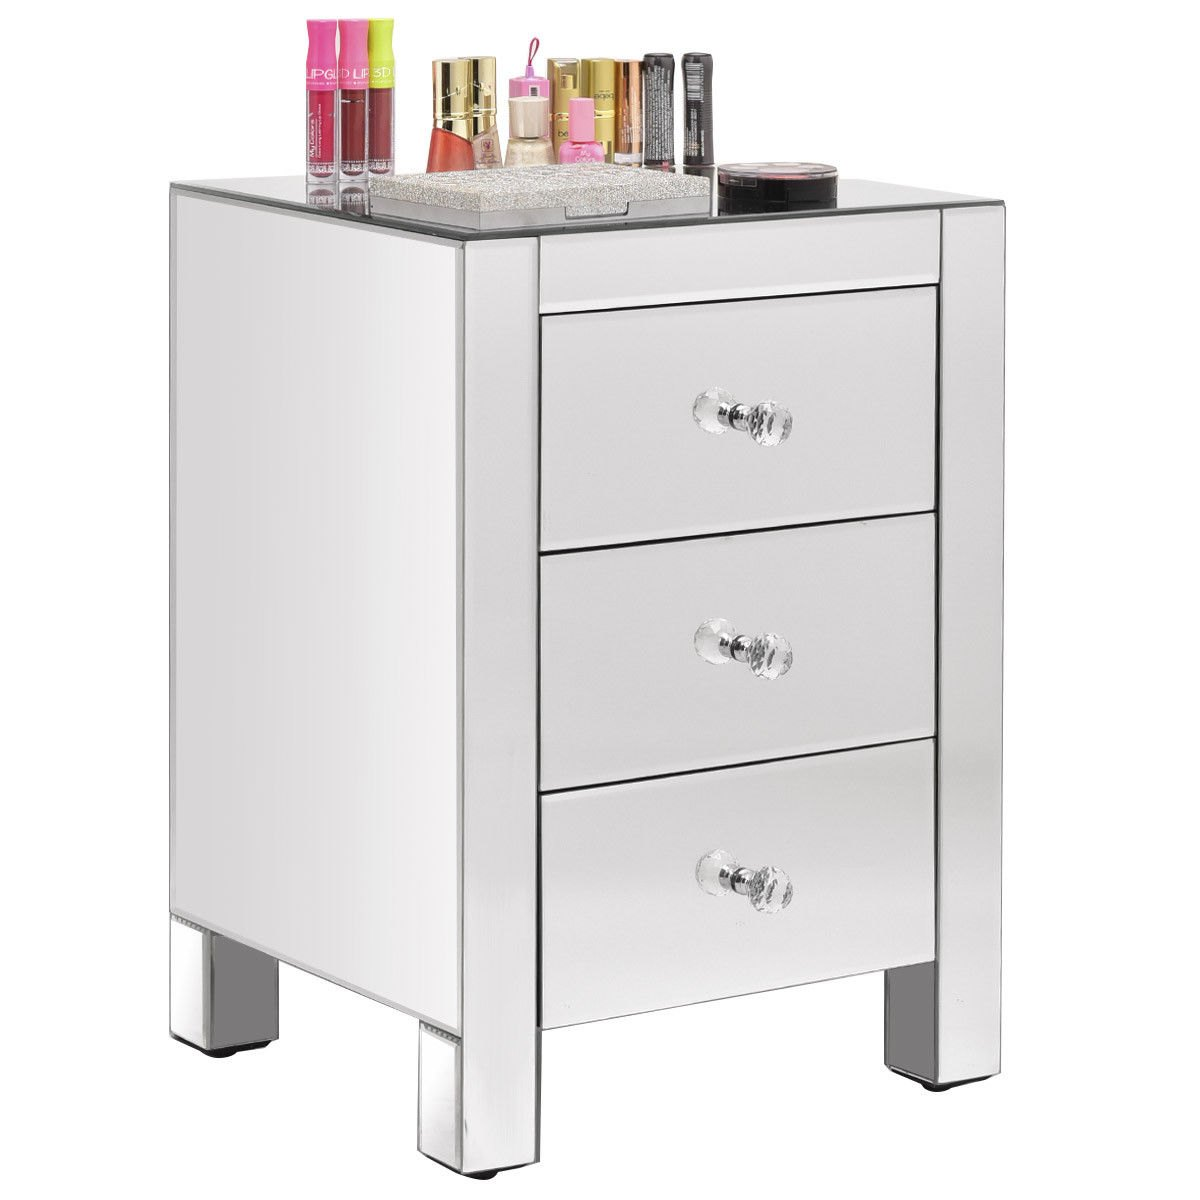 the perfect real mirrored nightstand modern gallery hotxpress way rakuten drawer mirror end table storage accent cabinet small thin bedside designer floor lamps folding kitchen